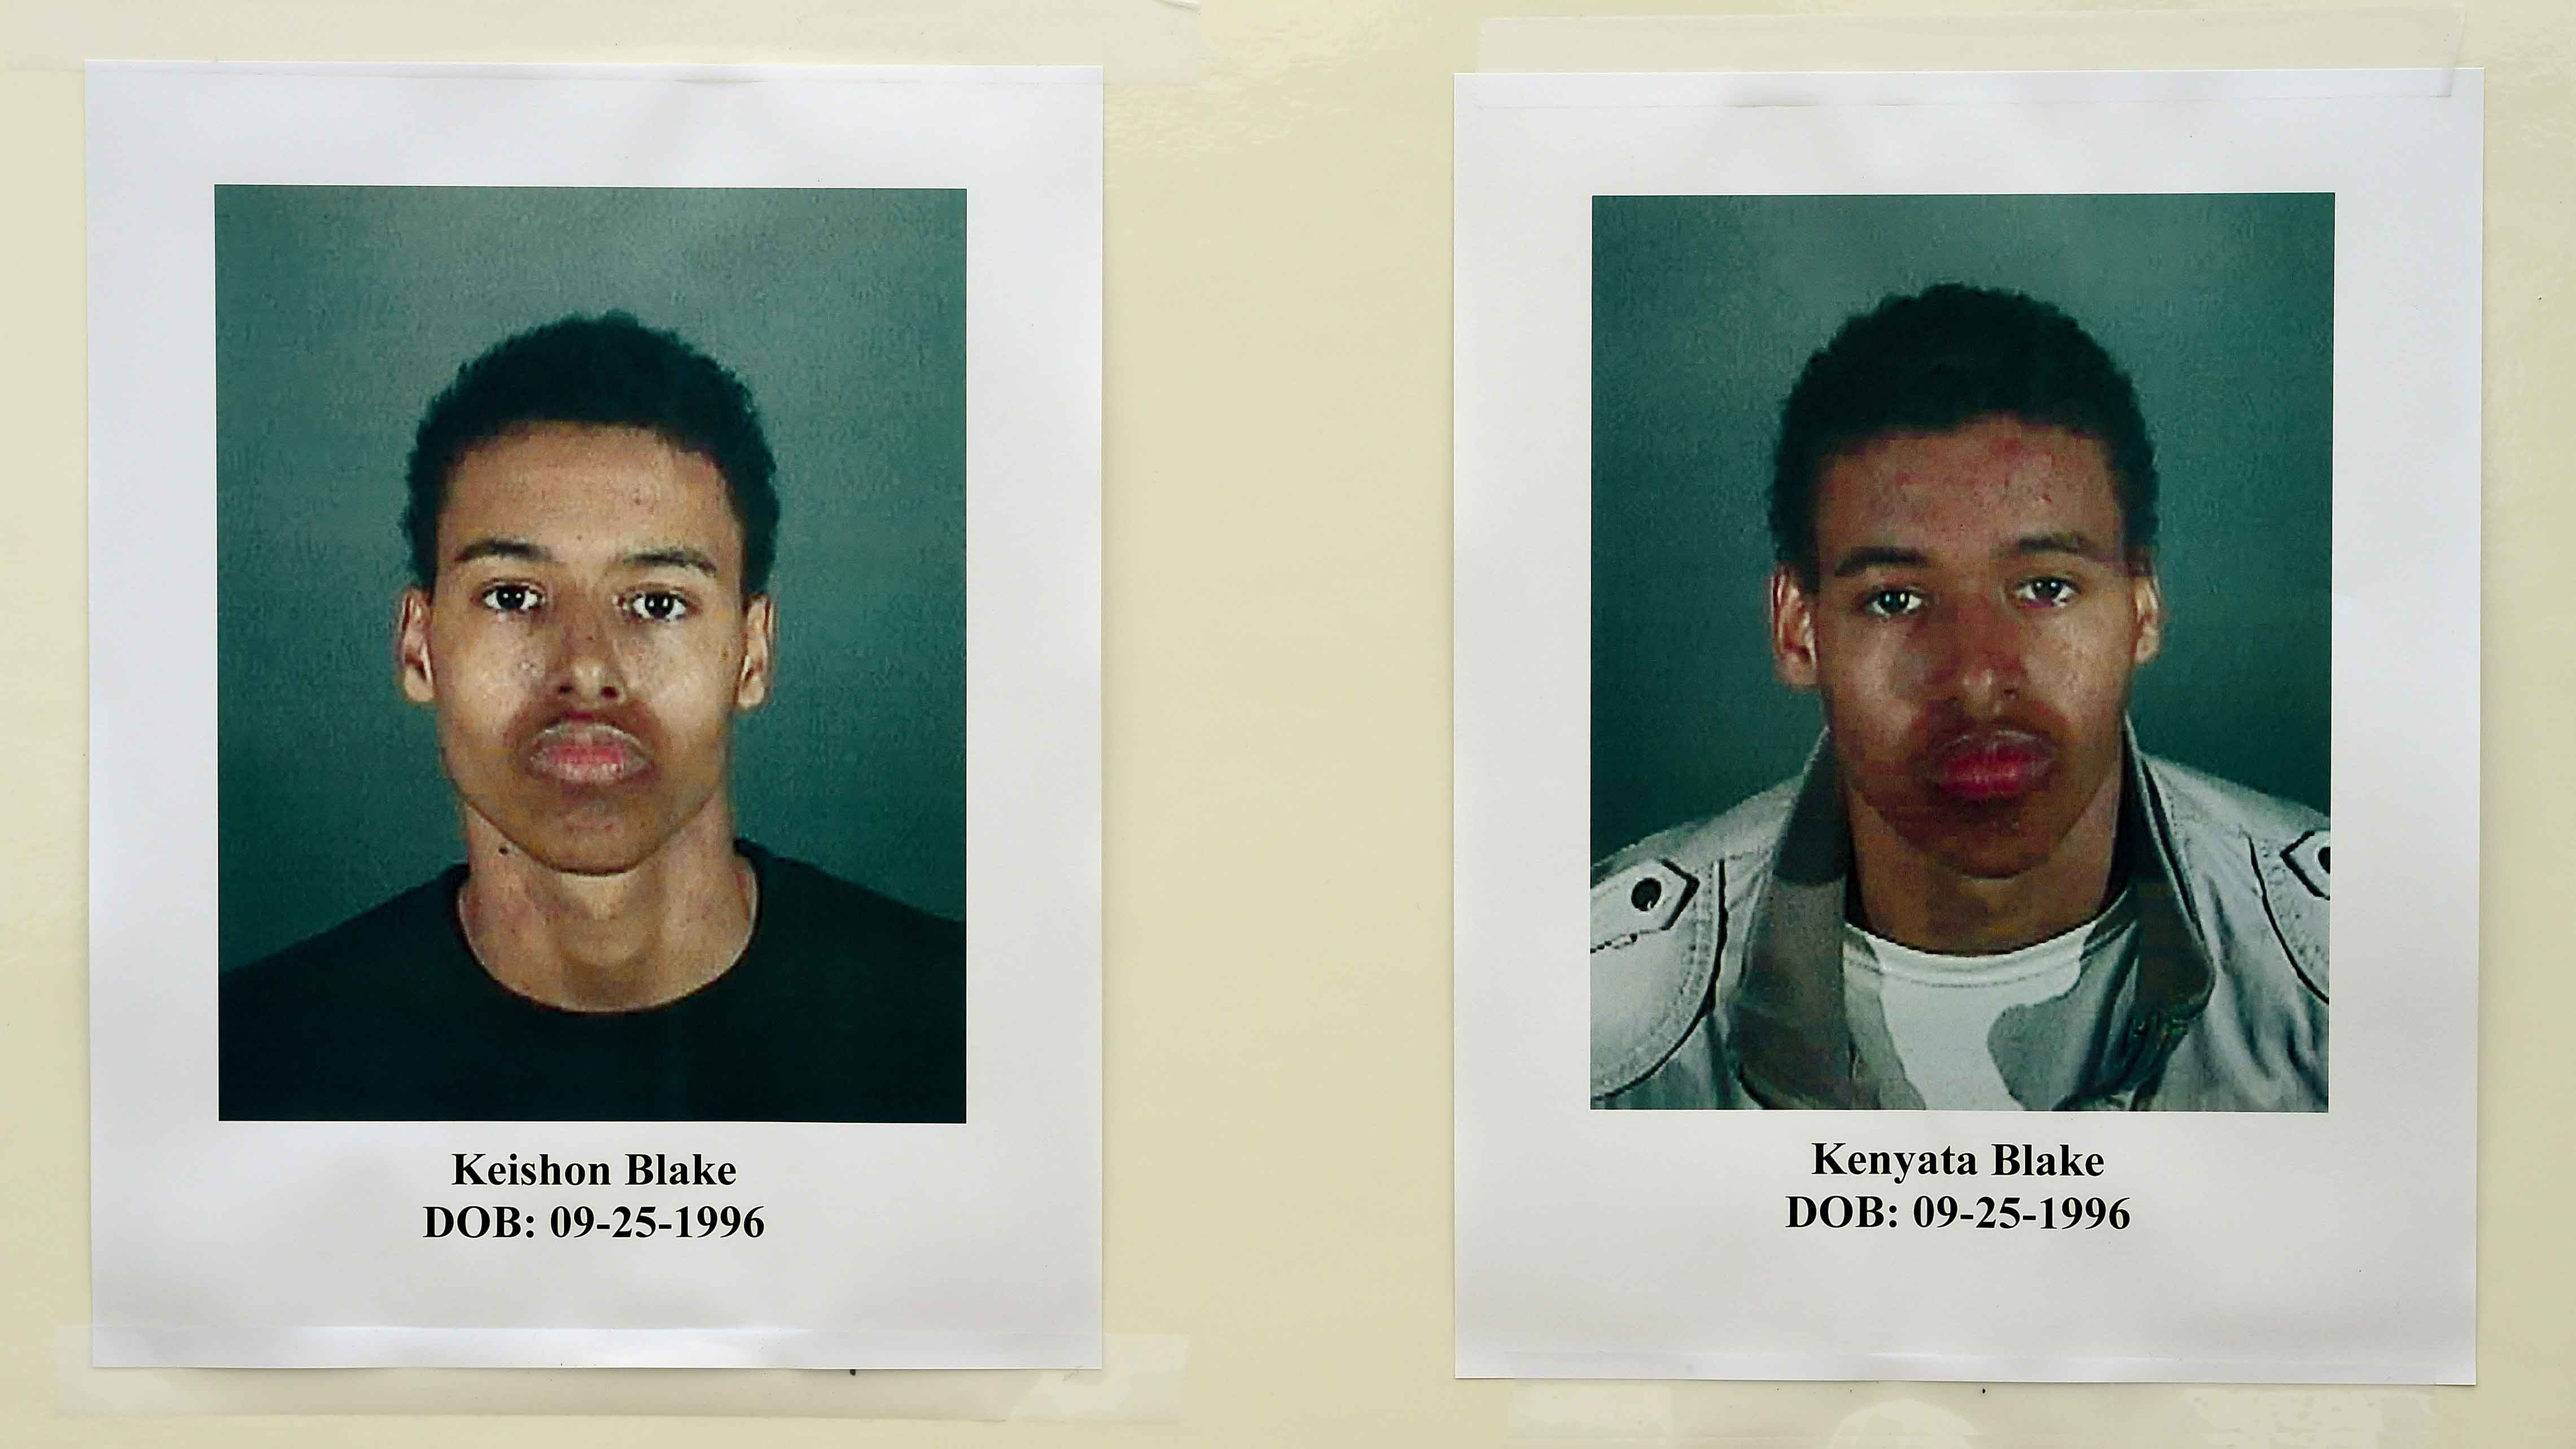 Double Trouble: Twins Who Have Committed Murders and Other Crimes